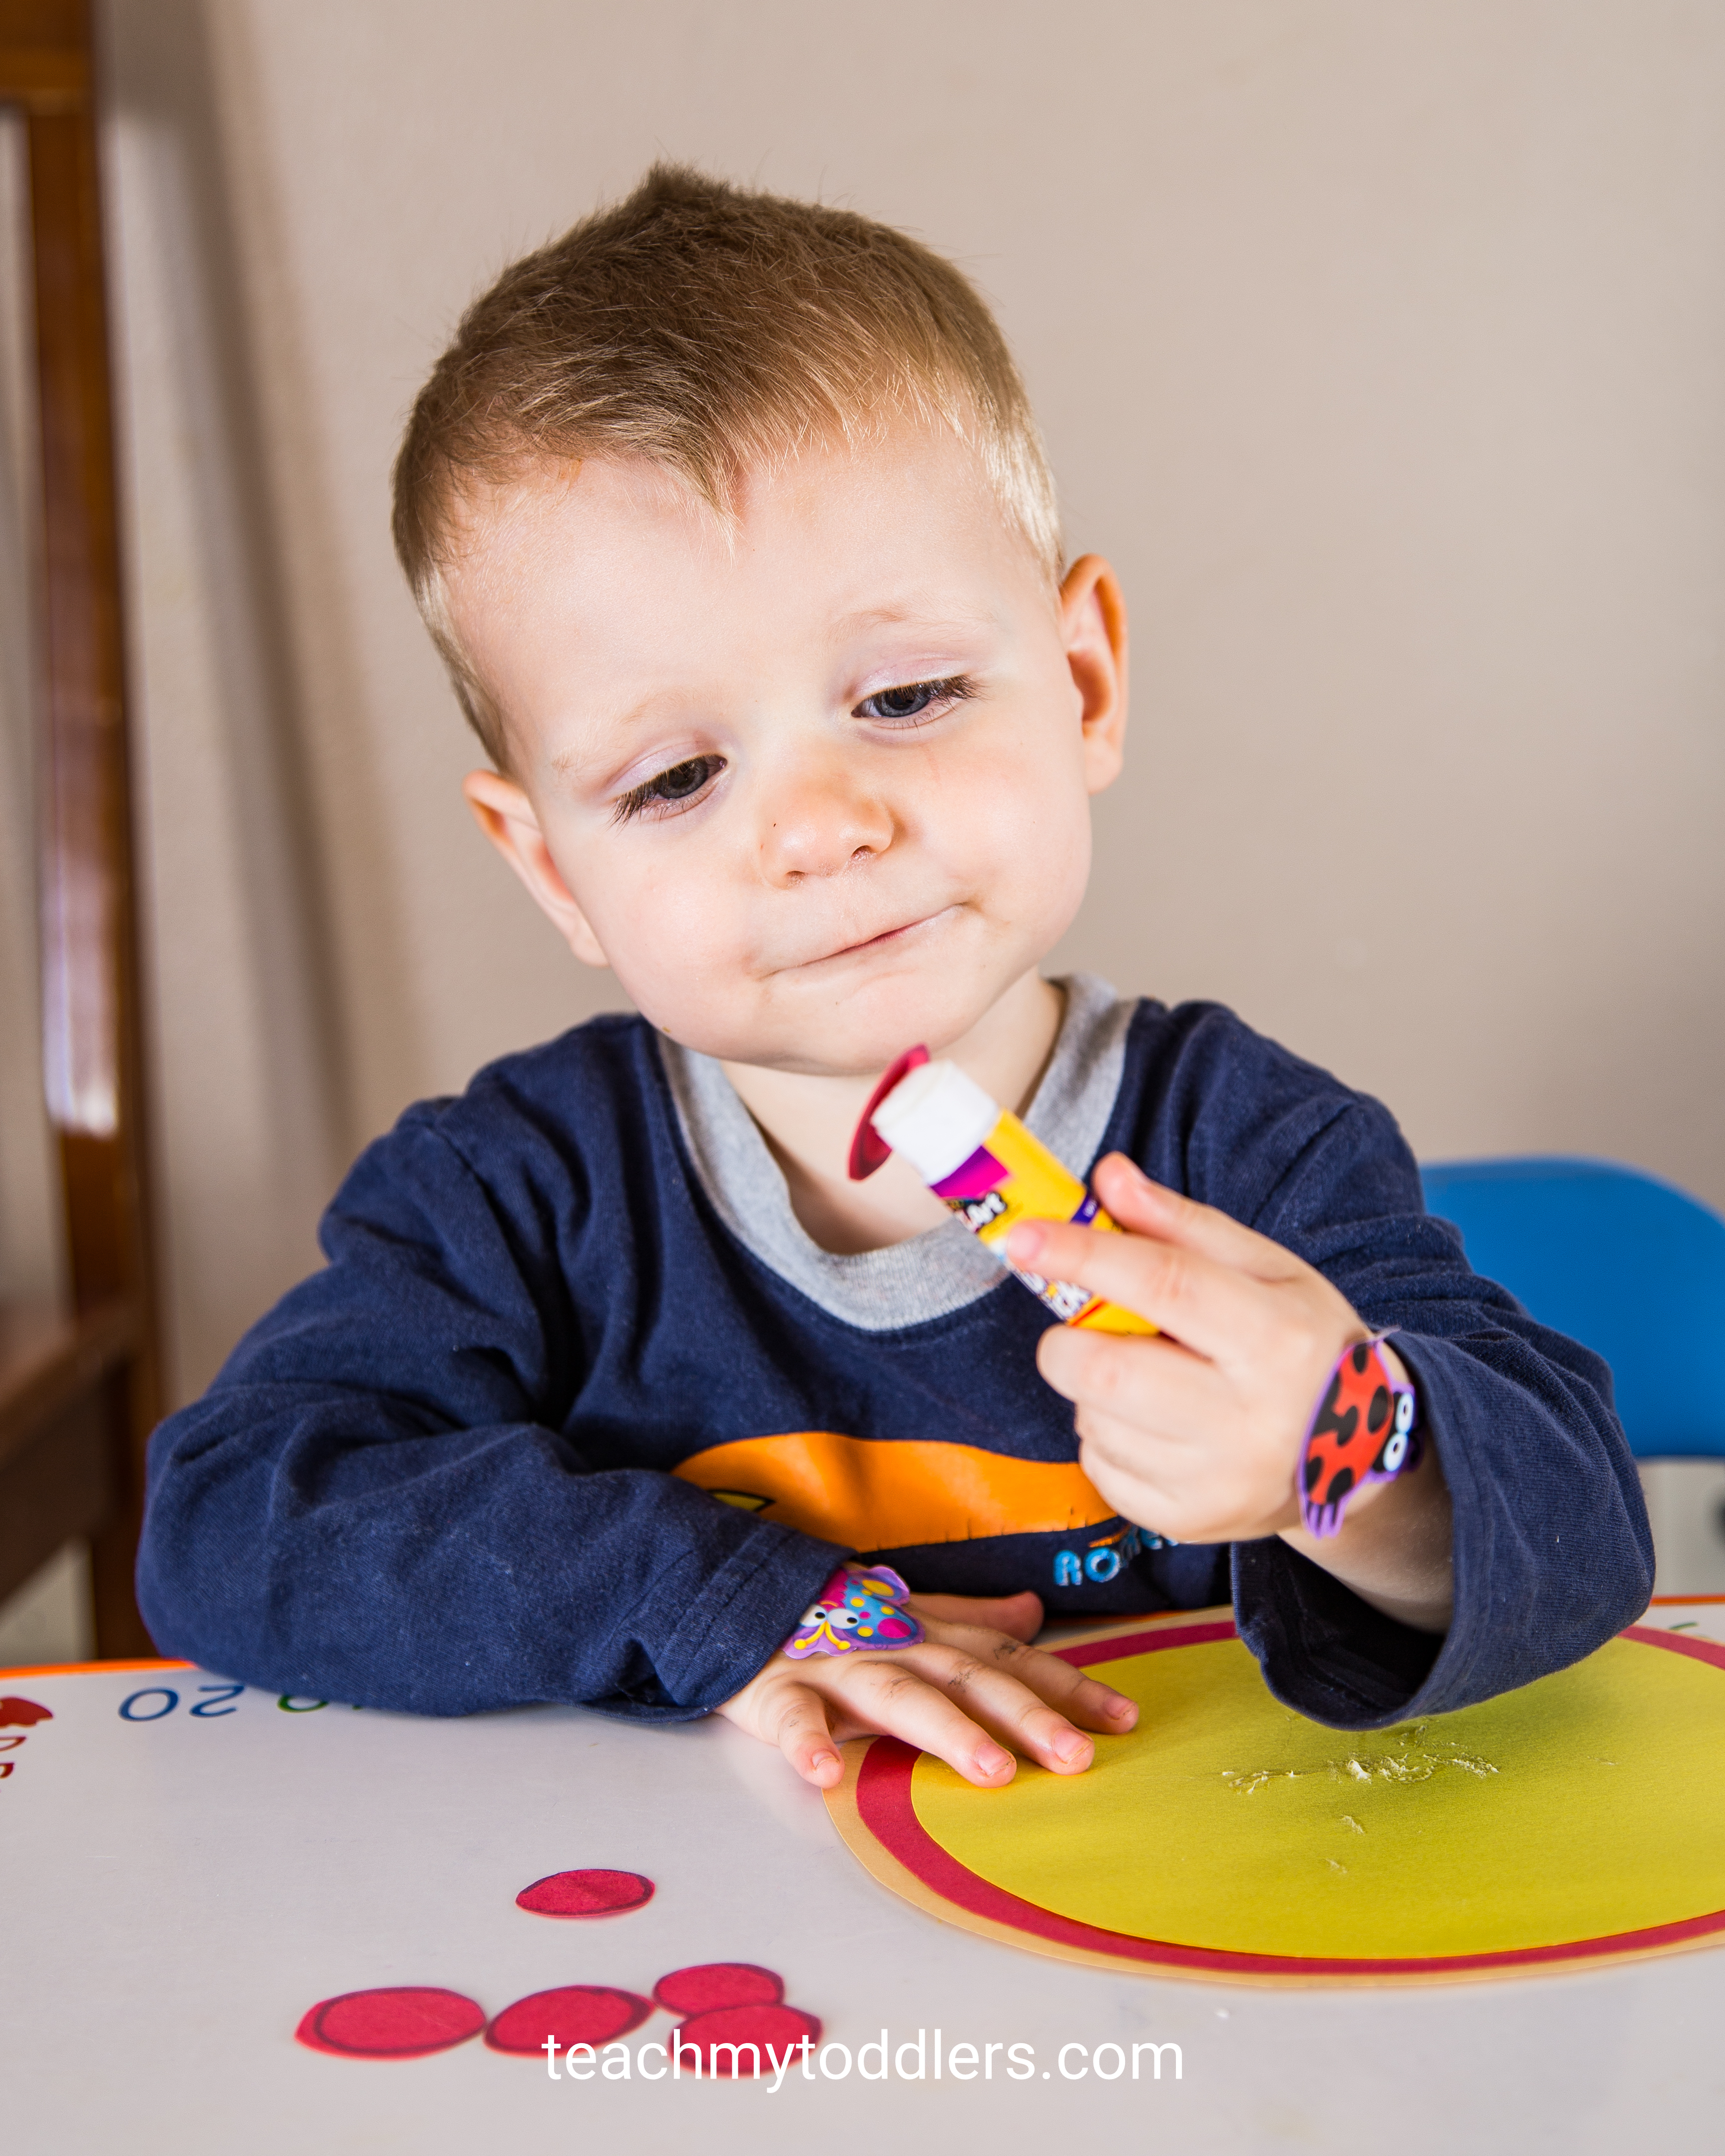 Find out how to use this pizza game to teach toddlers shapes